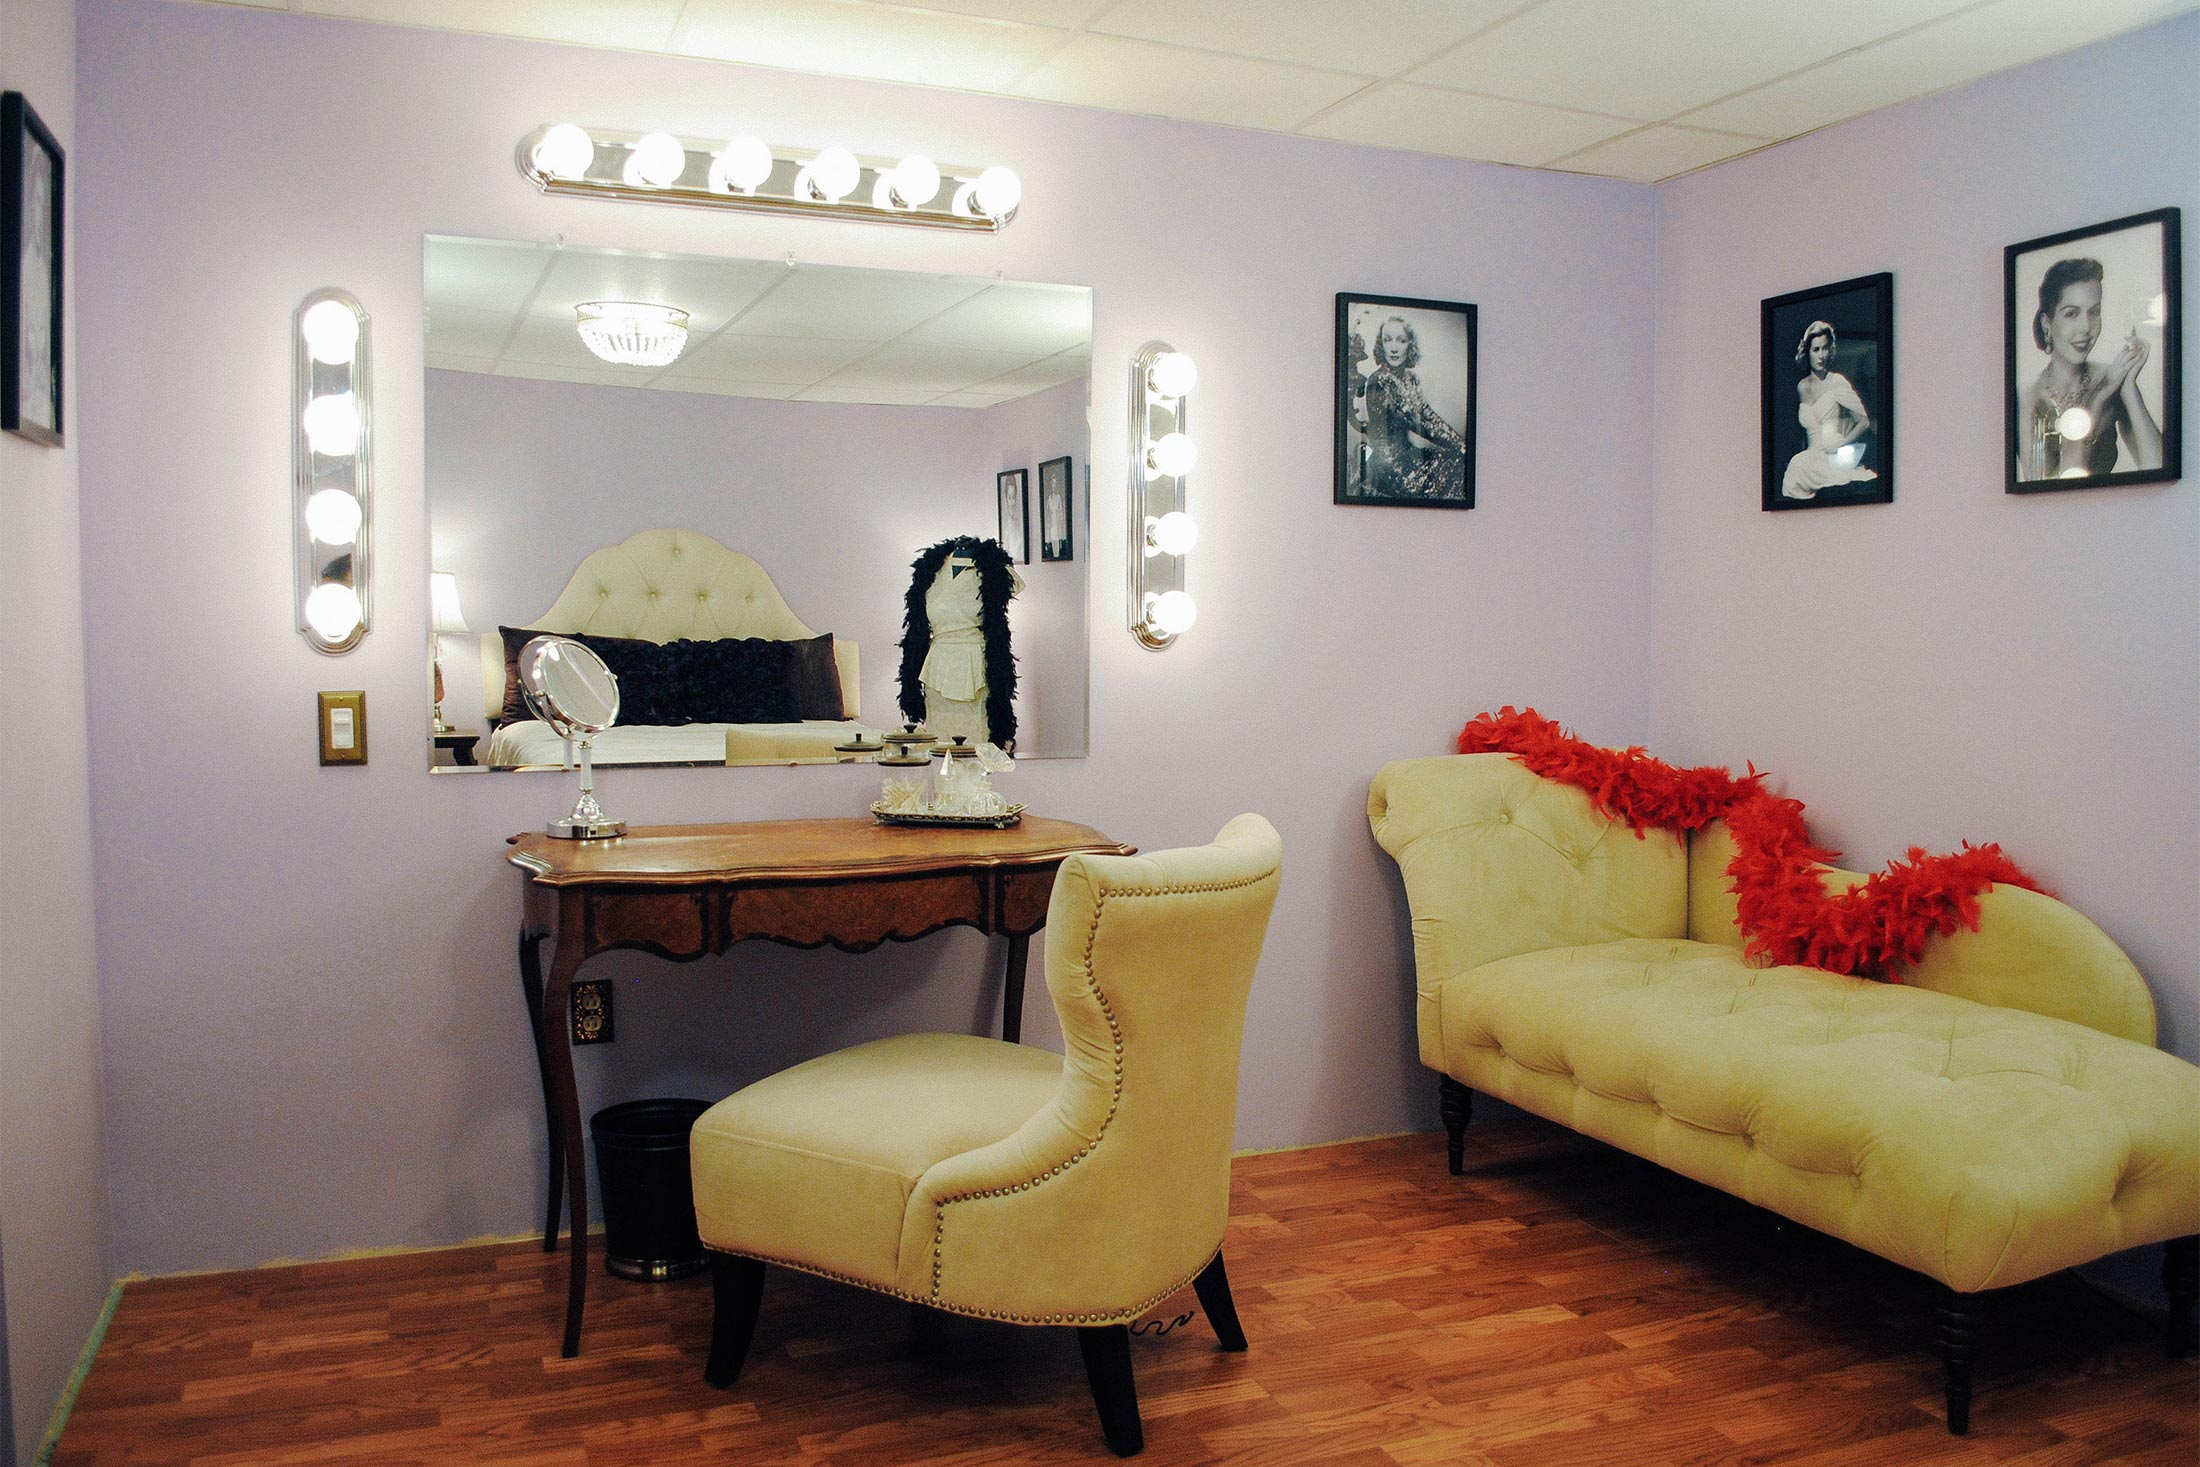 A lavender room with a vanity surrounded by globe lights, and a chaise draped in a red feather boa.